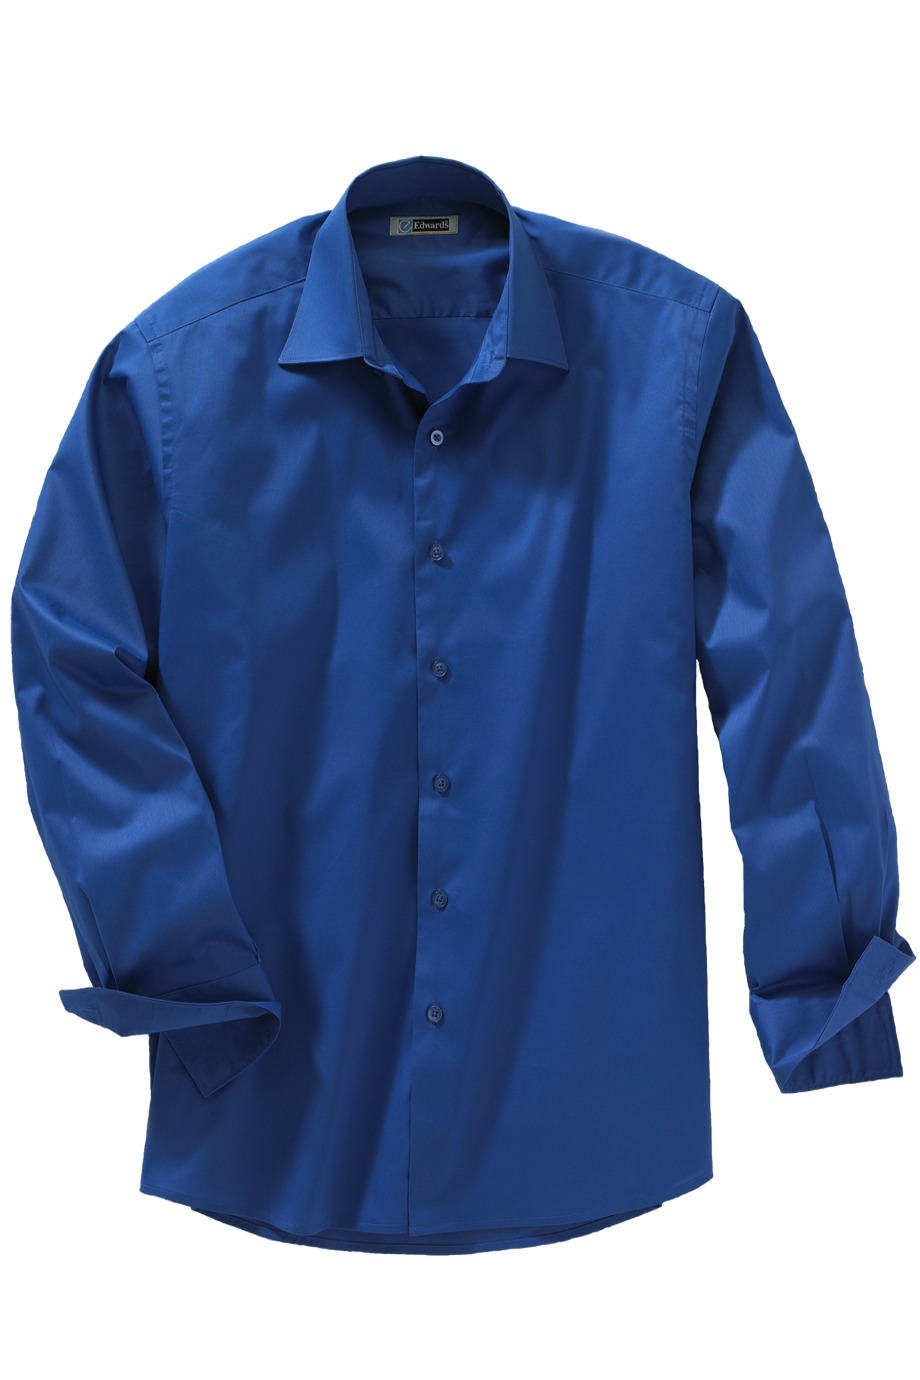 Edwards Garment 1033 - Spread Collar Dress Shirt